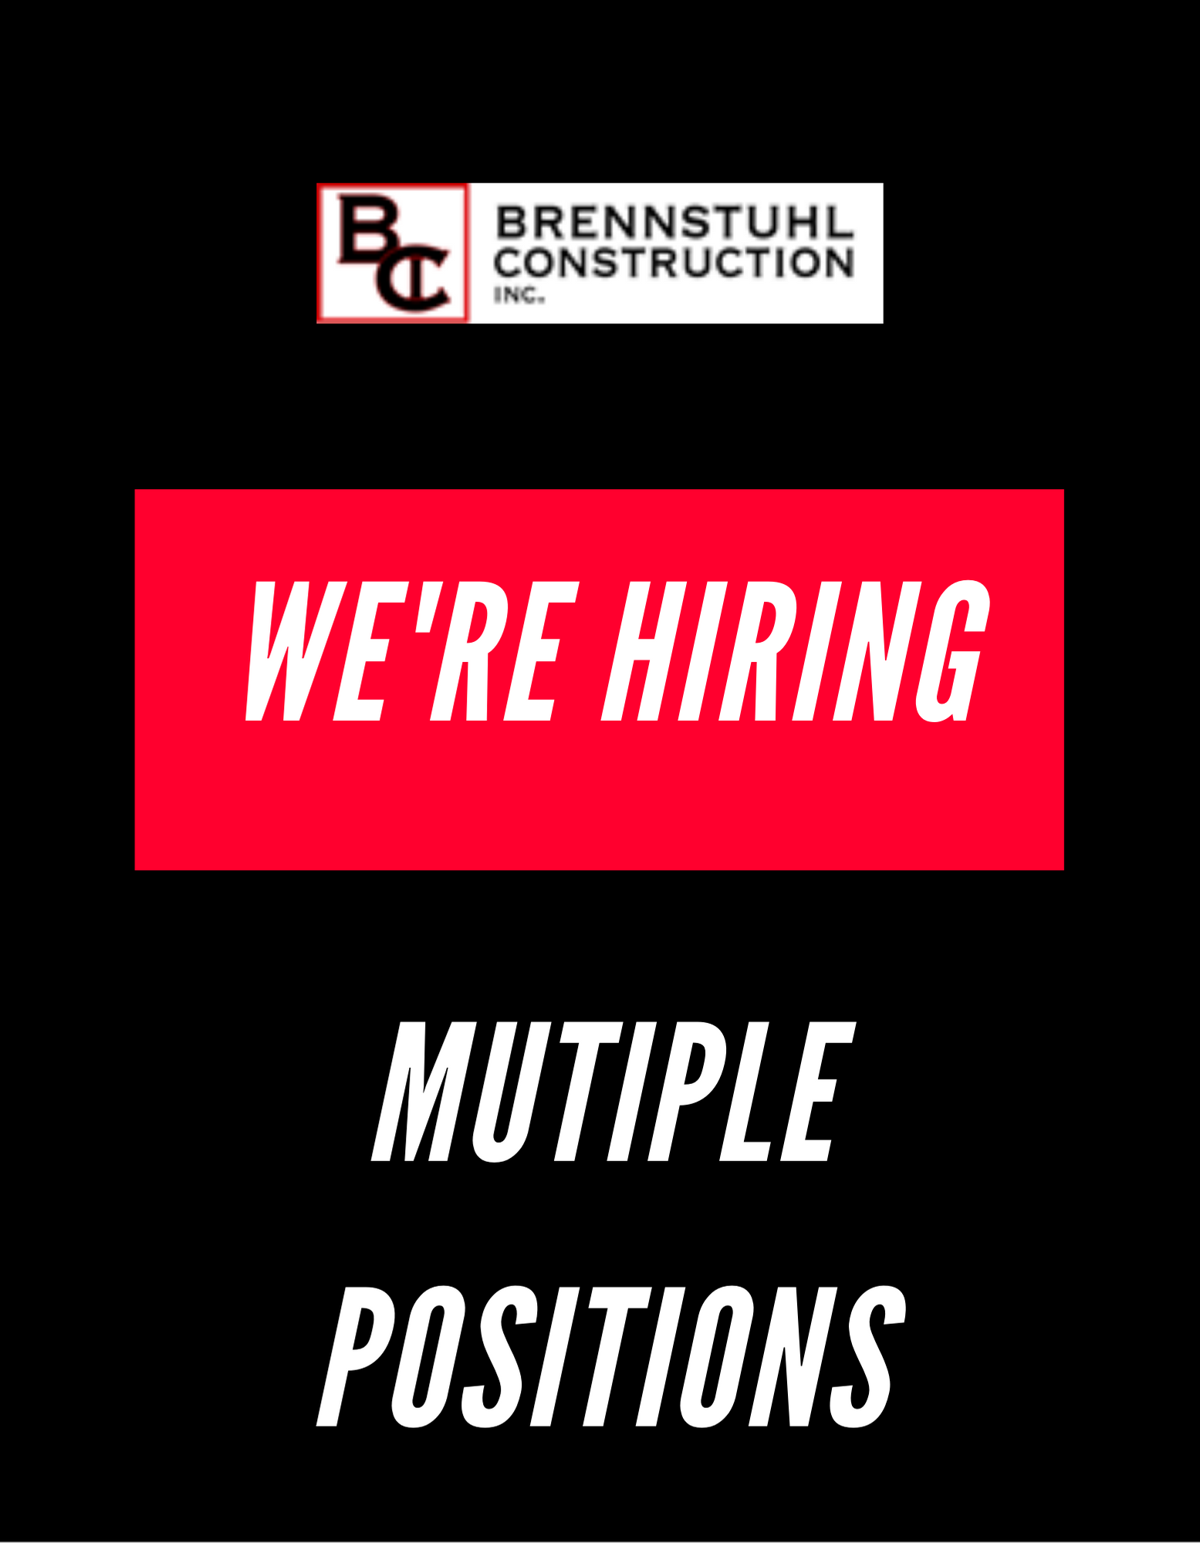 We're Hiring CDL Drivers, Concrete Finishers and Laborers! image 1